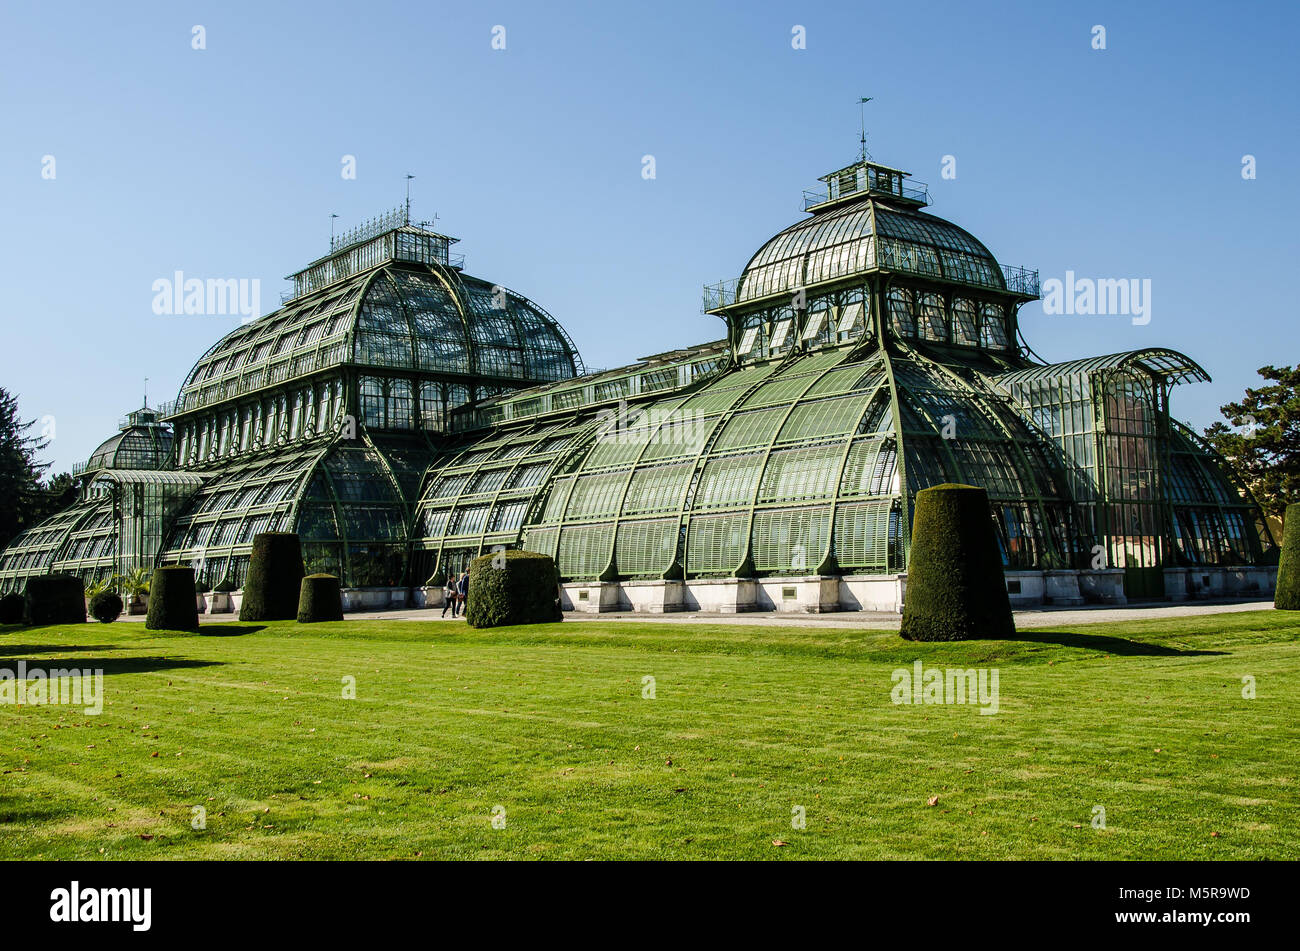 The Palmenhaus in the Schönbrunn Palace gardens is one of the last of its kind; a giant steel and glass construction - Stock Image